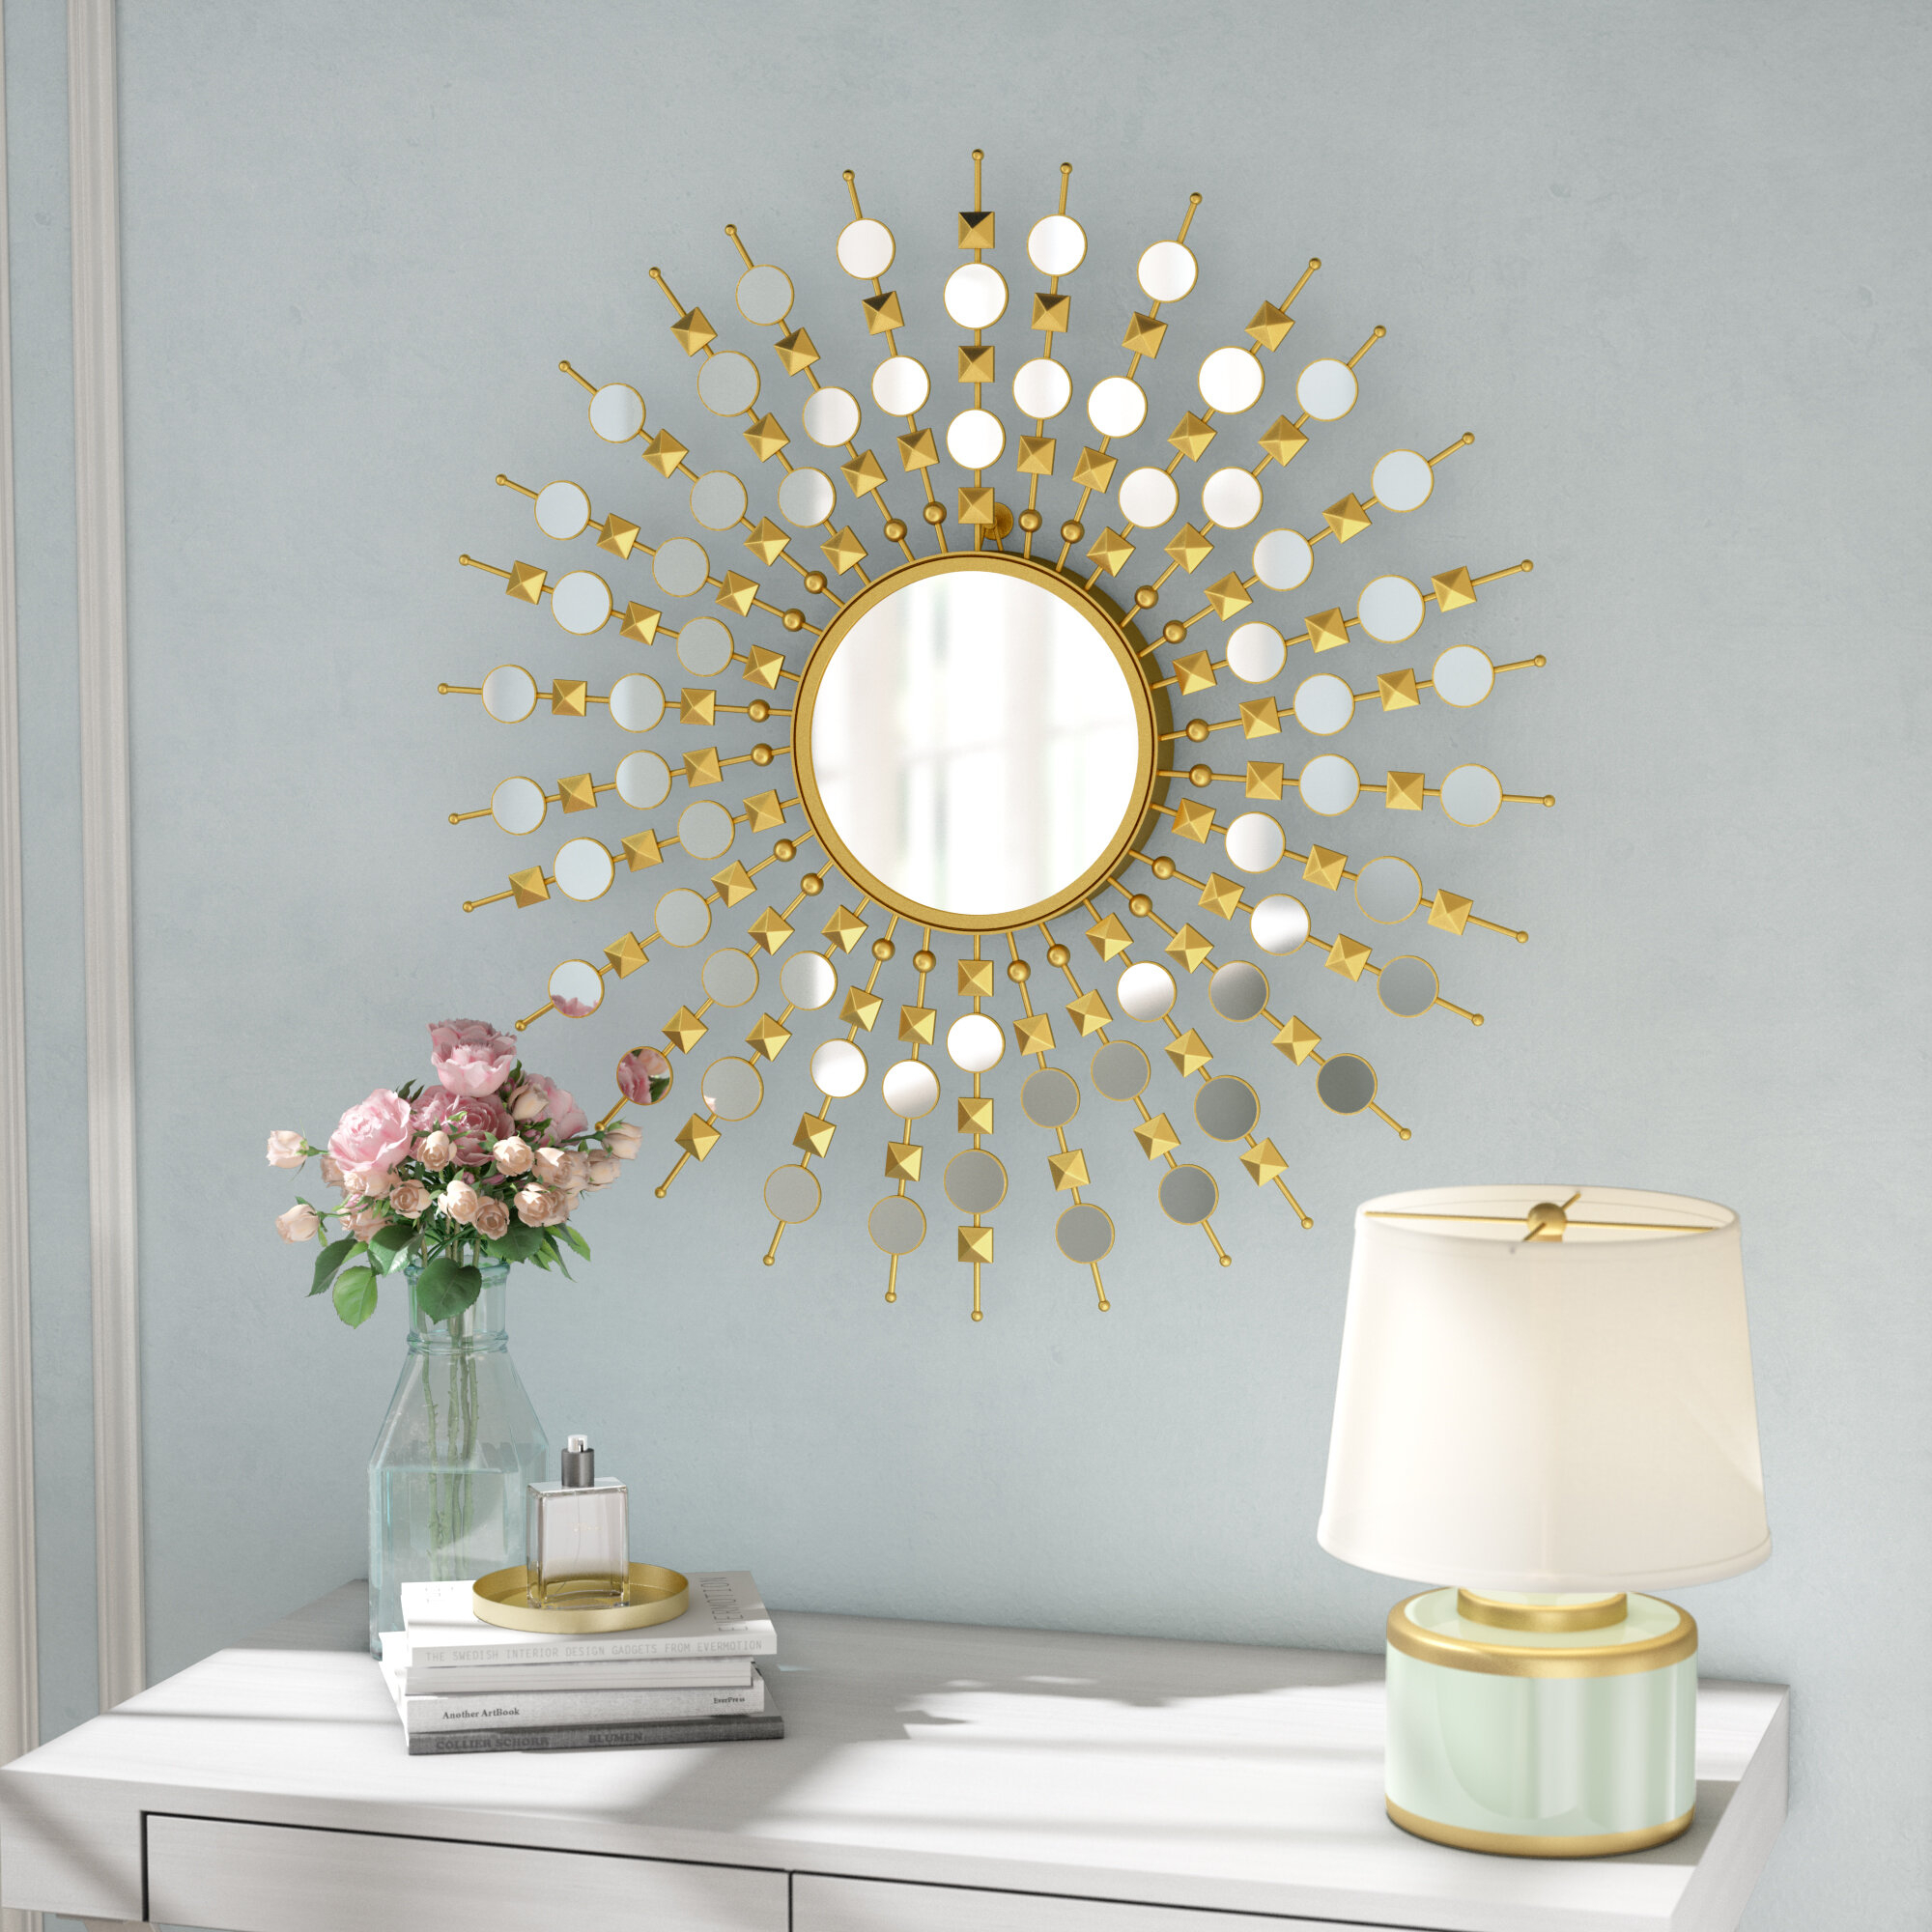 Starburst Wall Decor By Willa Arlo Interiors Throughout Well Known Willa Arlo Interiors Jamain Traditional Round Sunburst Frame Mirror (View 17 of 20)